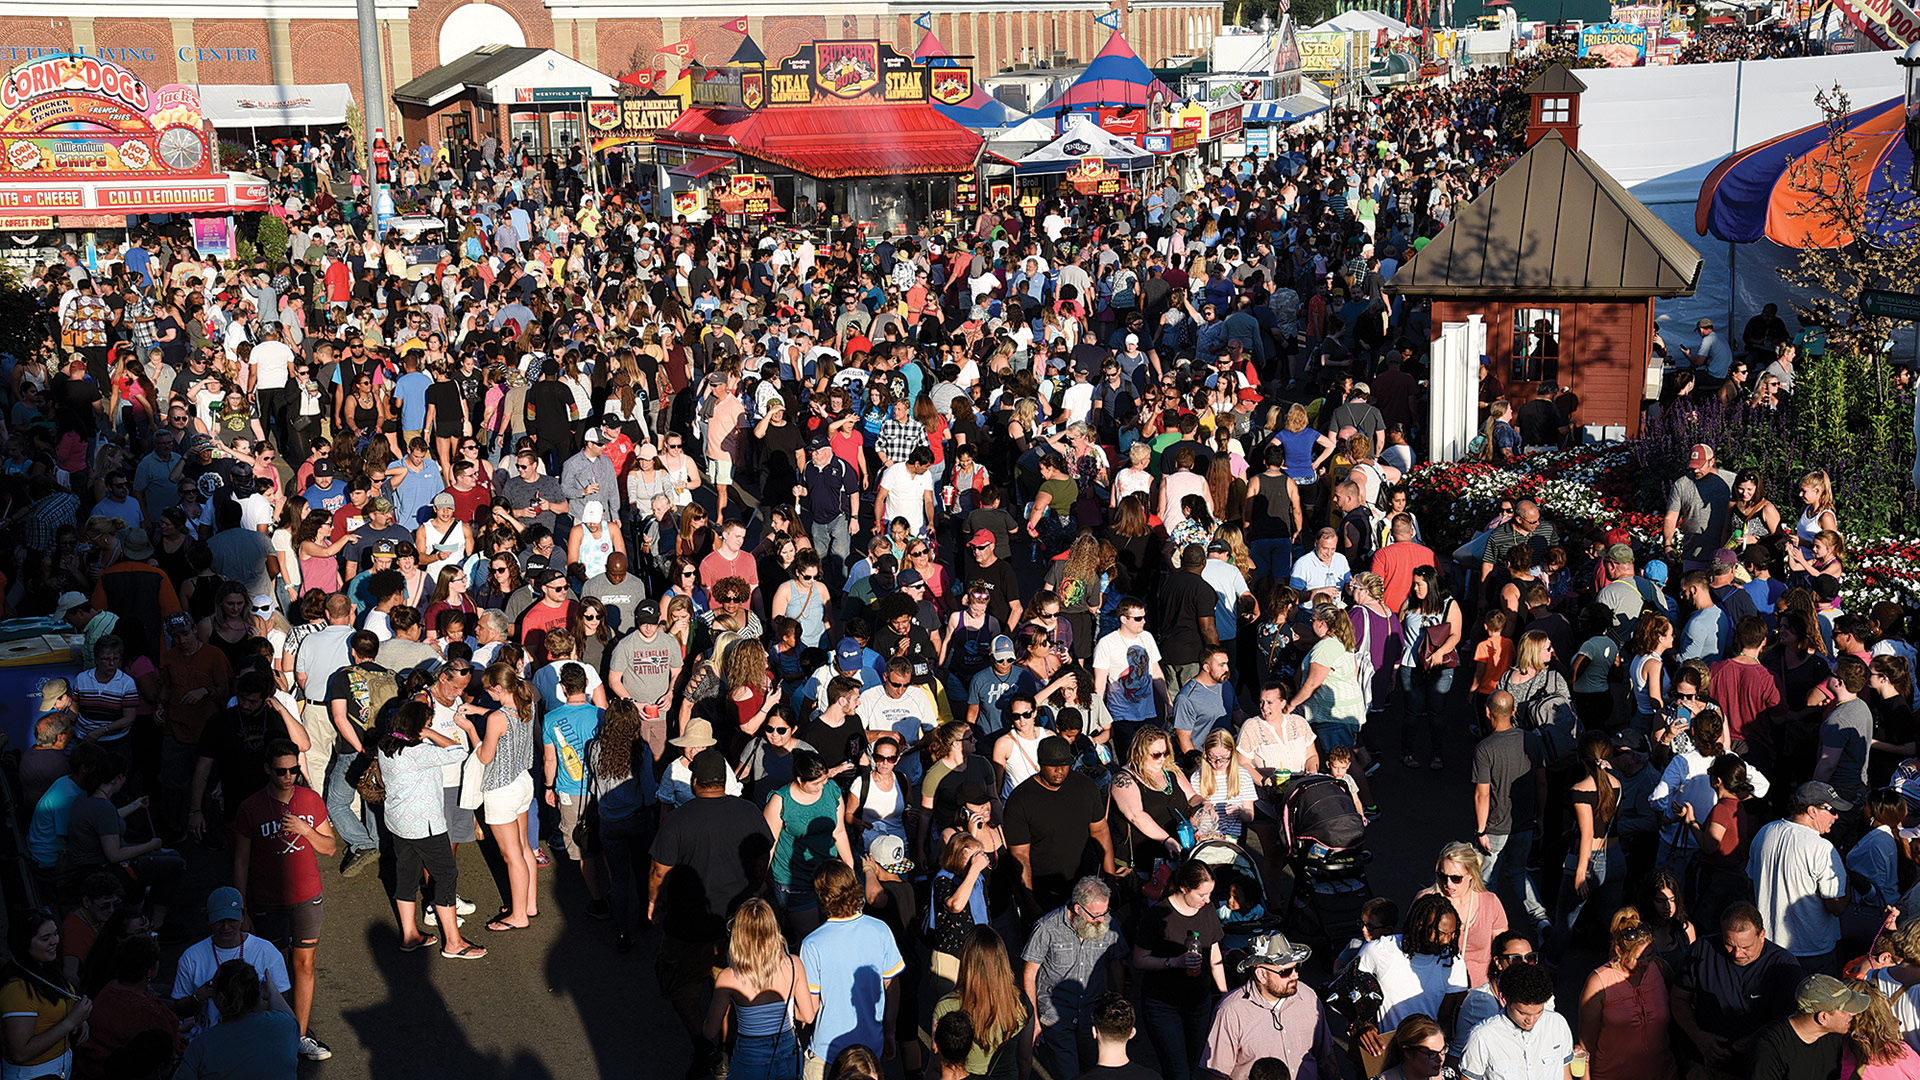 Gene Cassidy says there is pent-up demand for the Big E